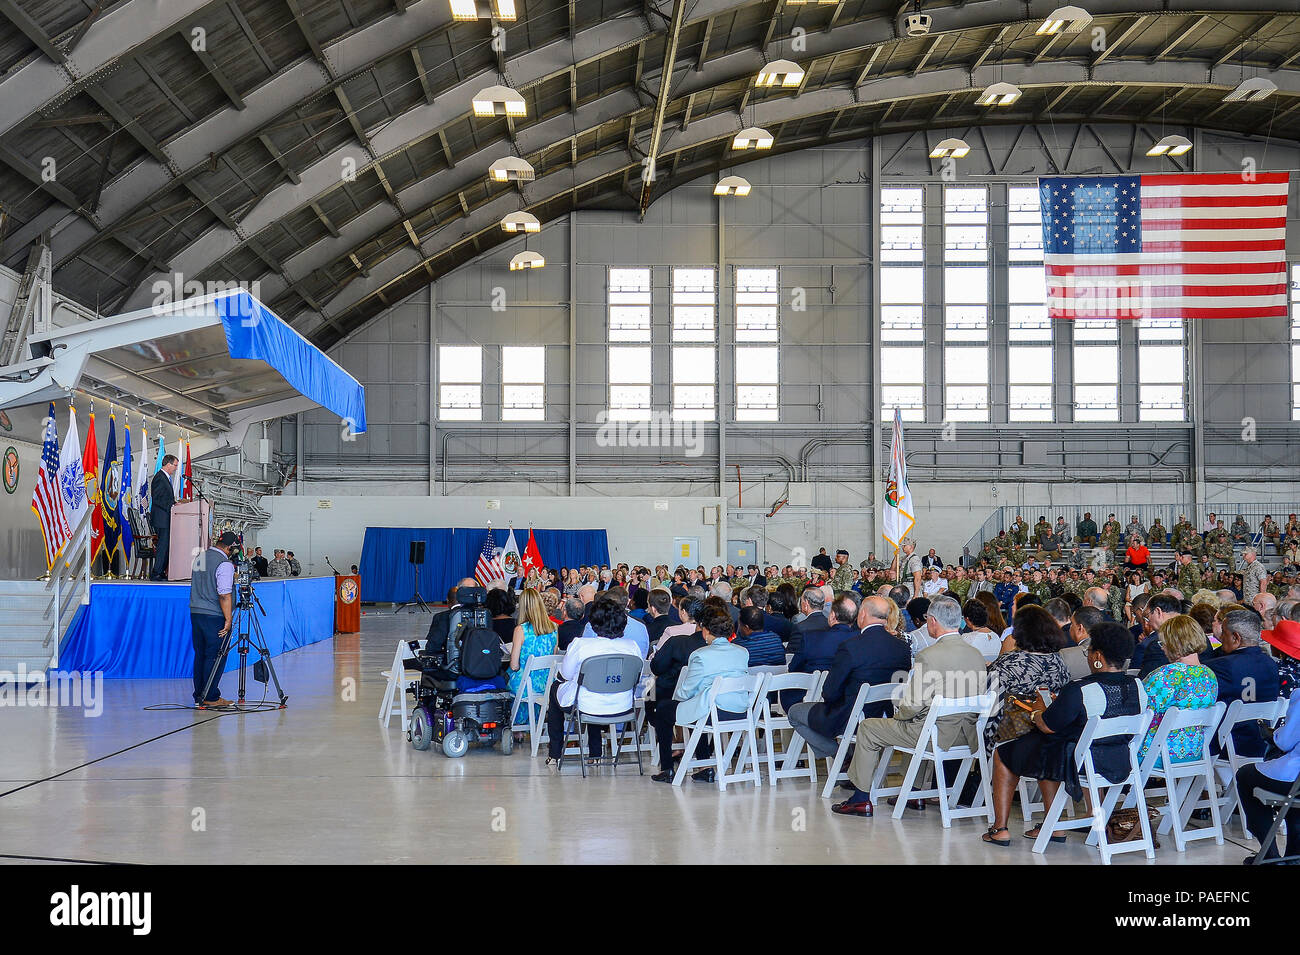 Defense Secretary Ash Carter addresses a crowd at the U.S. Central Command change of command ceremony at MacDill Air Force Base, Fla., March 30, 2016. Secretary Carter officiated the change of command ceremony, which attracted more than 1,000 attendees, including Joint Chiefs of Staff chairman U.S. Marine Gen. Joseph F. Dunford, Central Command's component commanders, community leaders and senior coalition representatives. (U.S. Air Force photo by Senior Airman Ned T. Johnston) Stock Photo